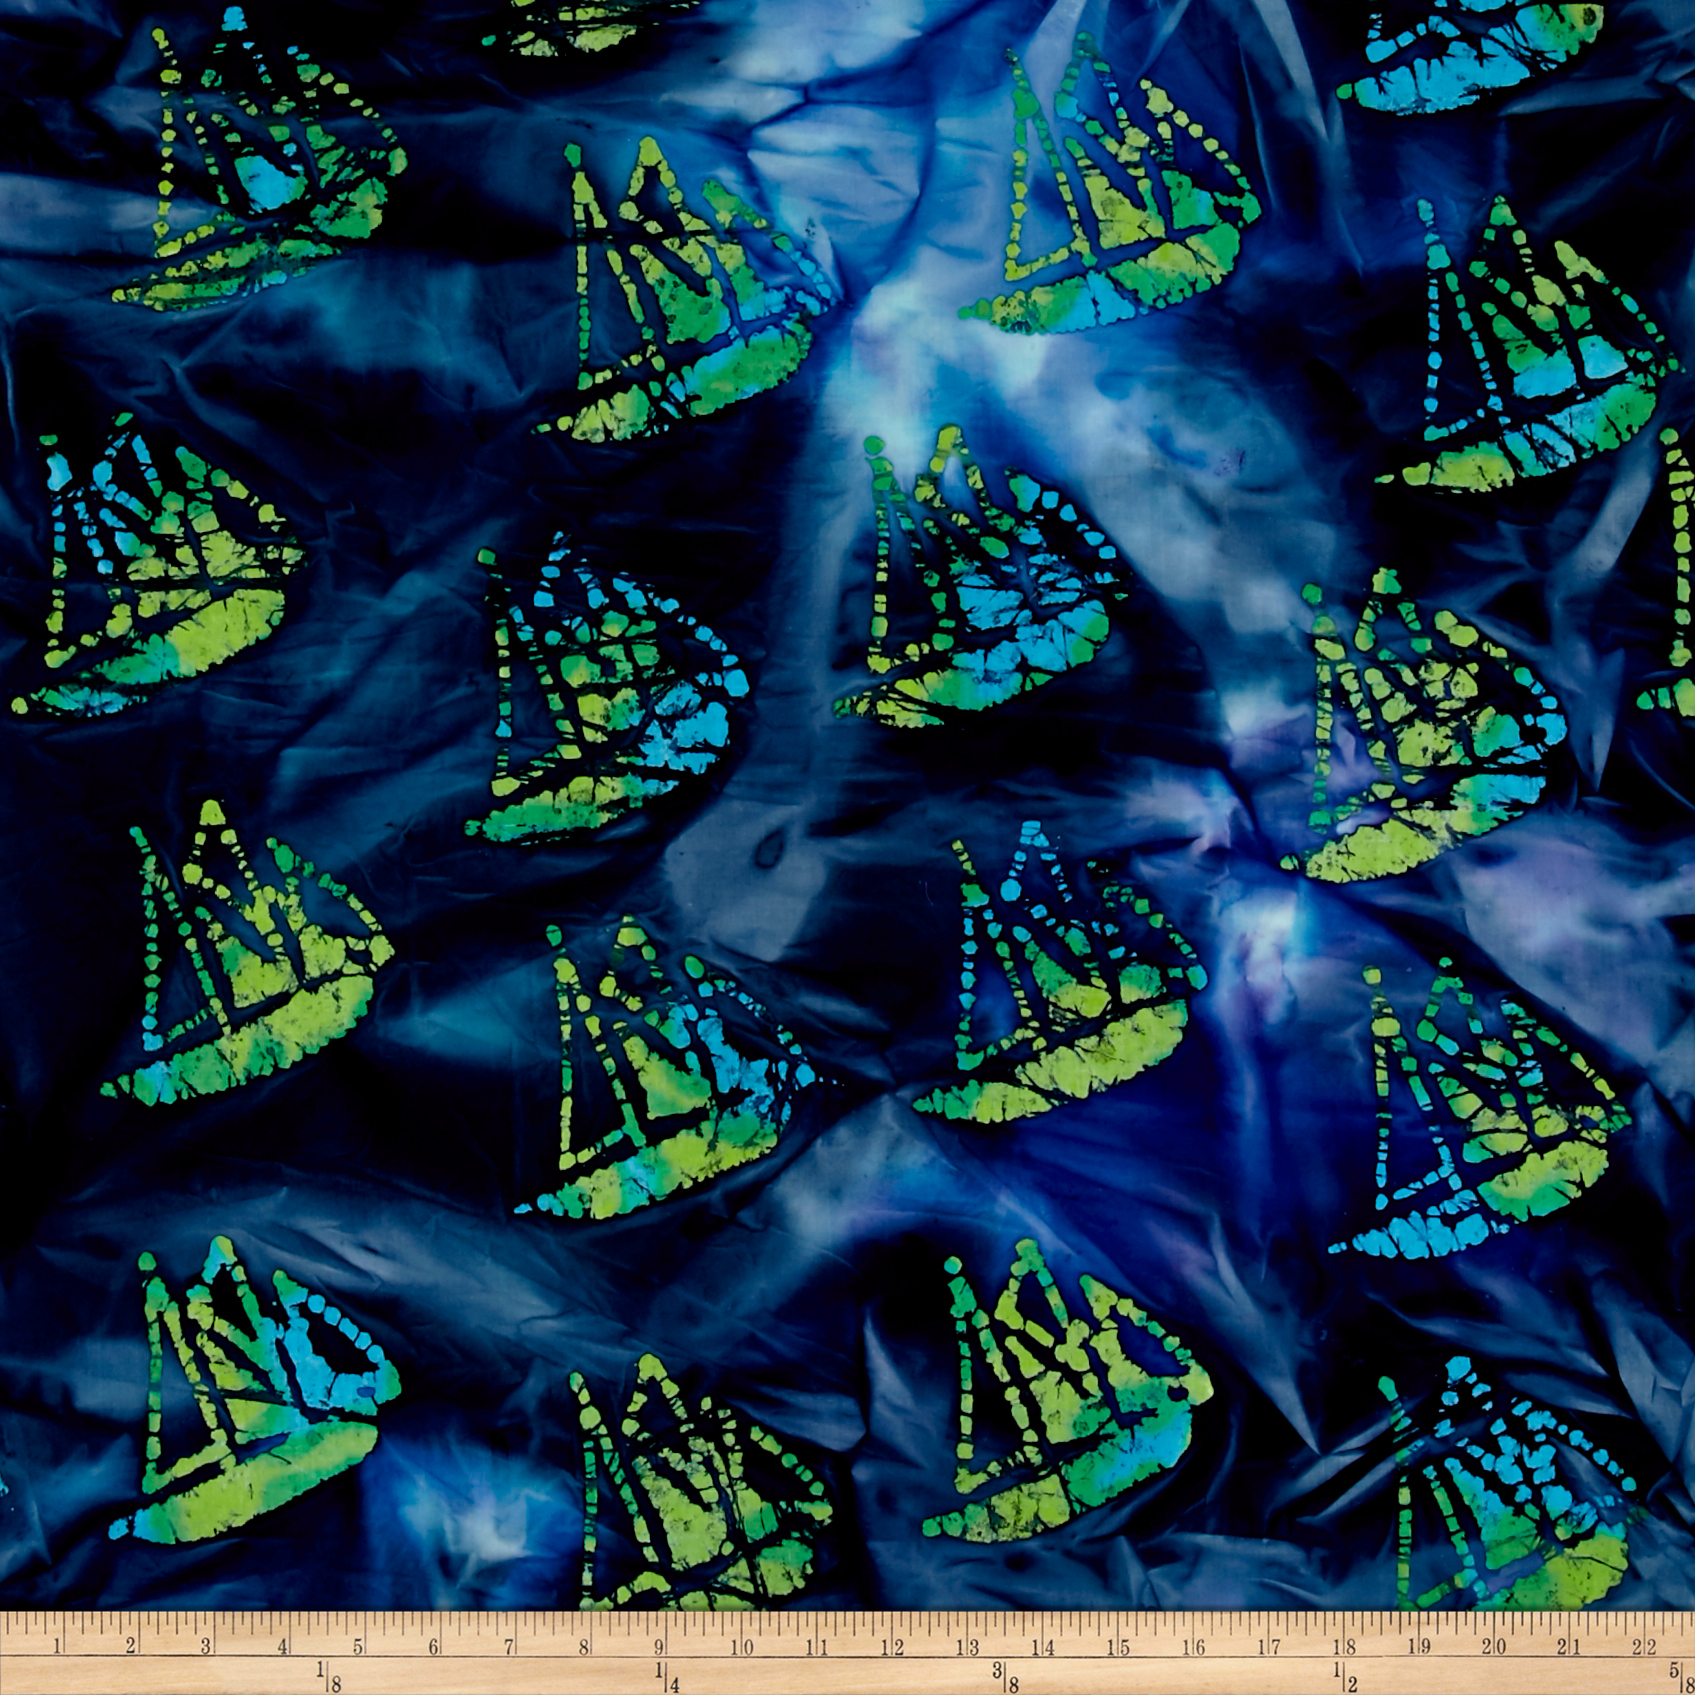 Indian Batik Ocean Grove Sail Boat Navy/Blue/Grn Fabric by Textile Creations in USA